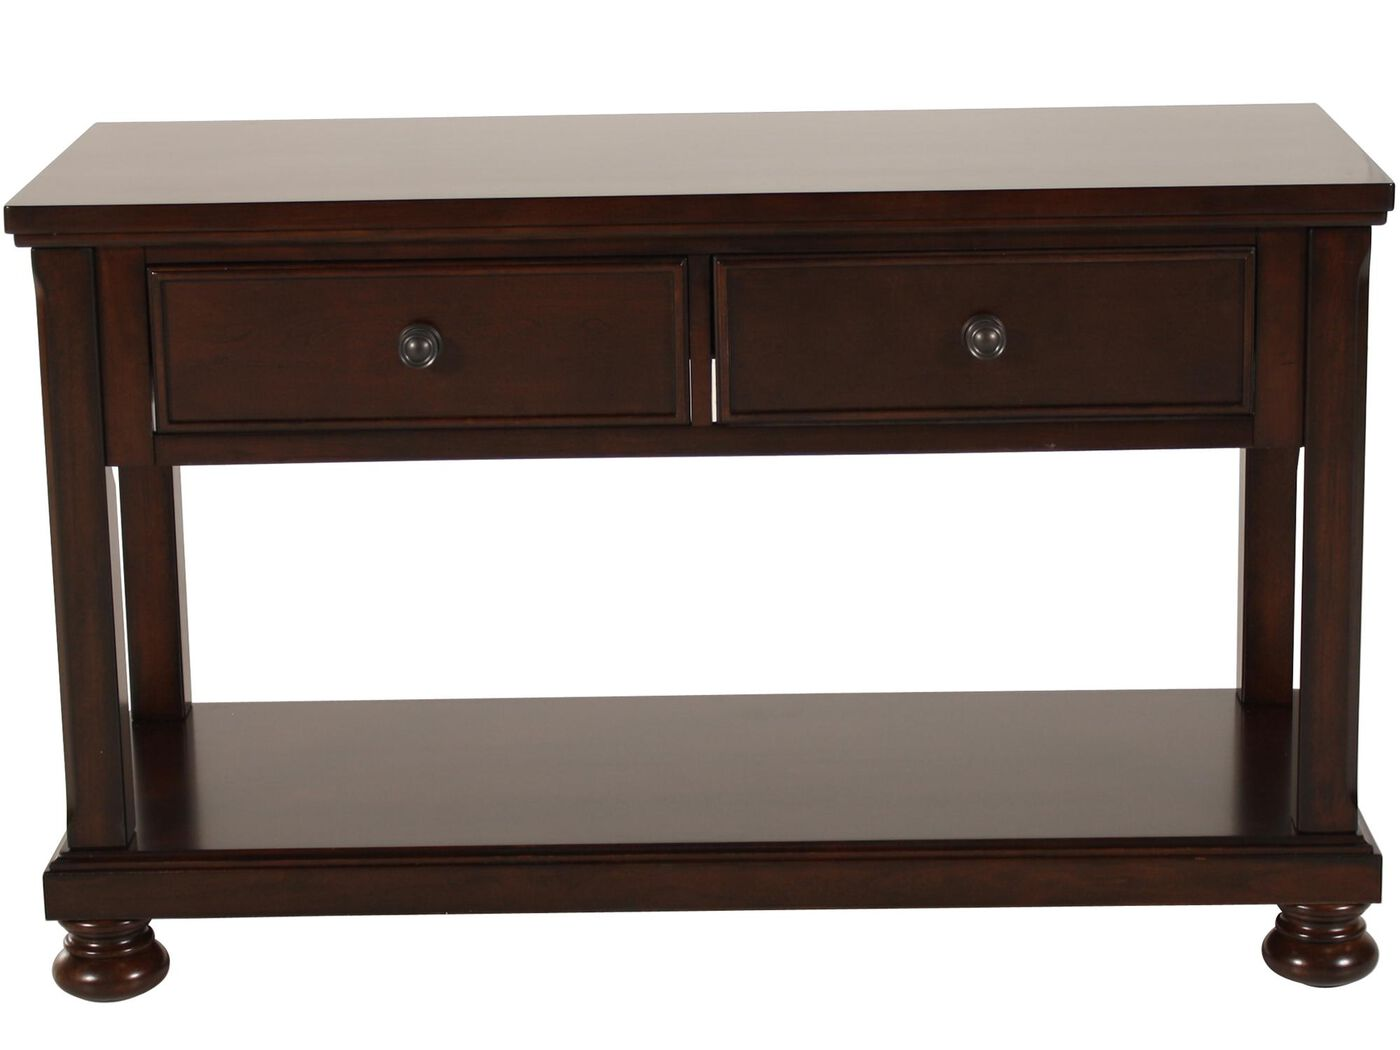 Twodrawer Traditional Sofa Table In Brown Cherry  Mathis. Metal Drawer Pulls. Kids Small Desk. Adjustable Office Desk. Support Desk. 30 X 72 Table. Bedroom Tv Stand With Drawers. How To Keep Your Desk Organized. Desk Top Scanner